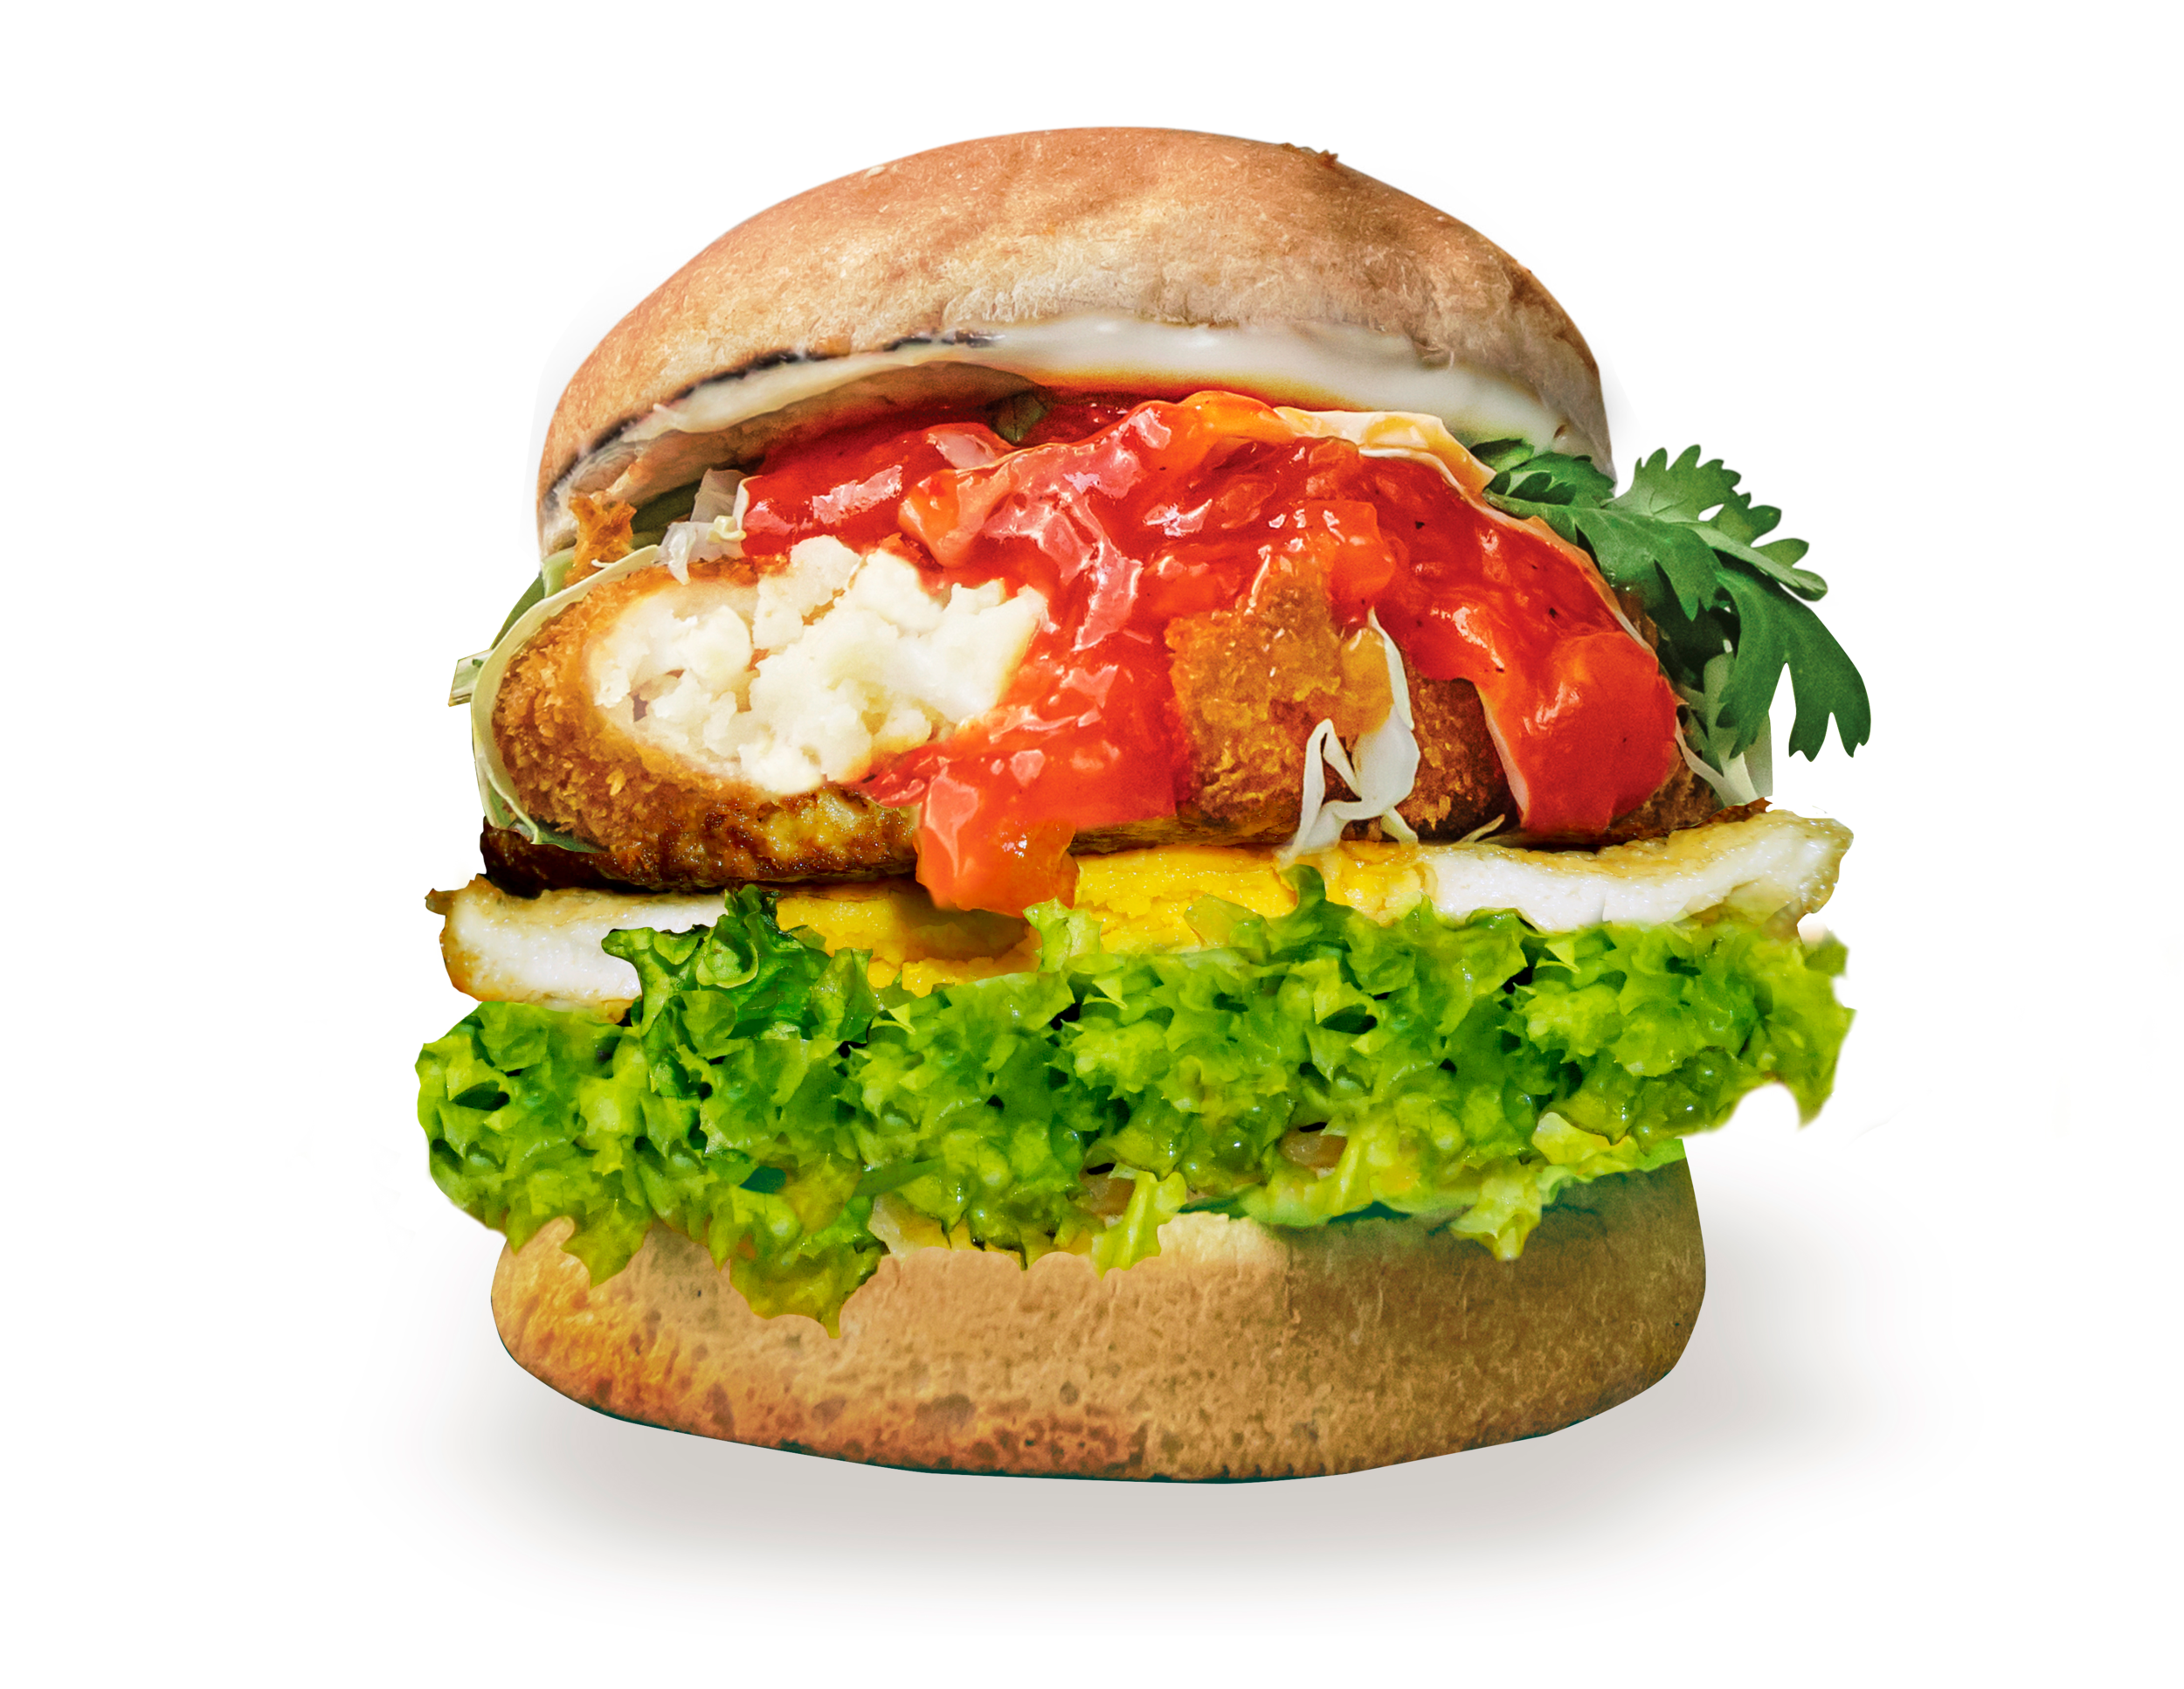 Chili Krab Burg cropped.png